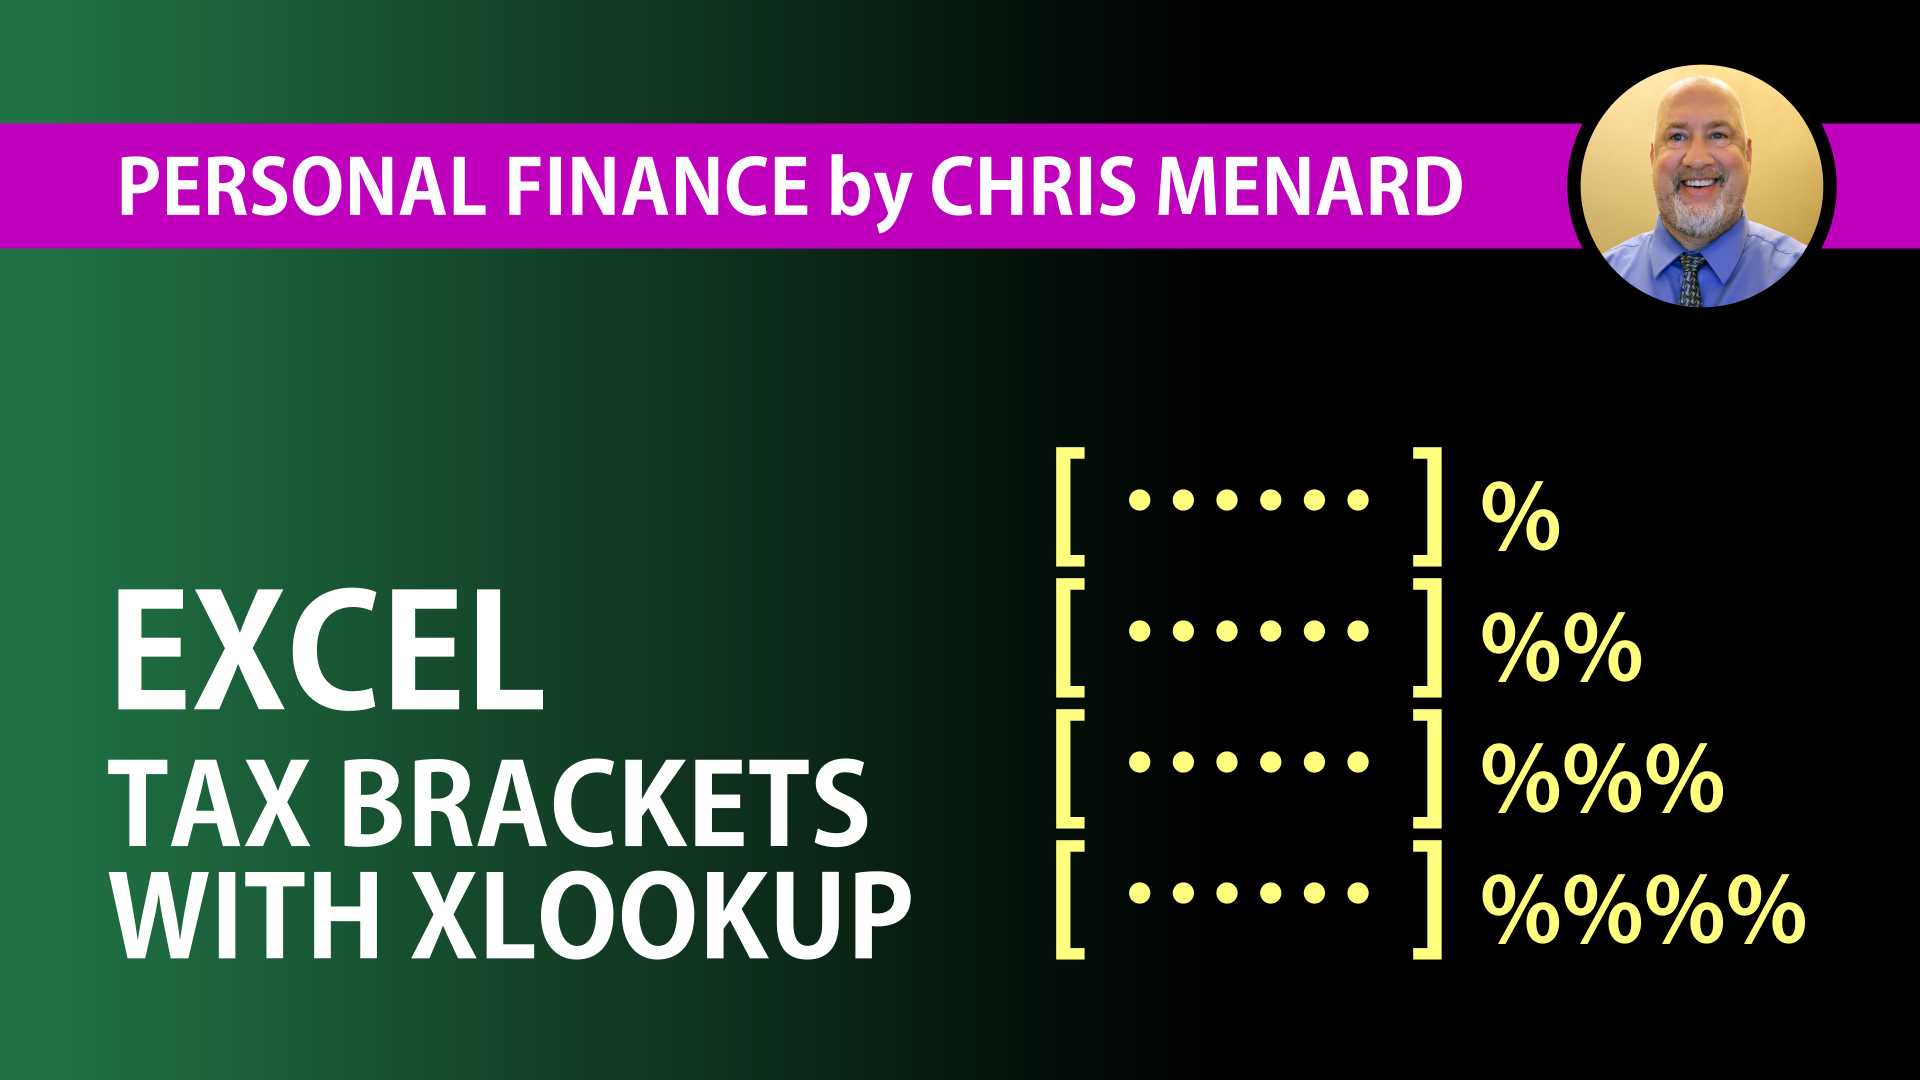 Tax Brackets Explained using Excel's XLOOKUP function